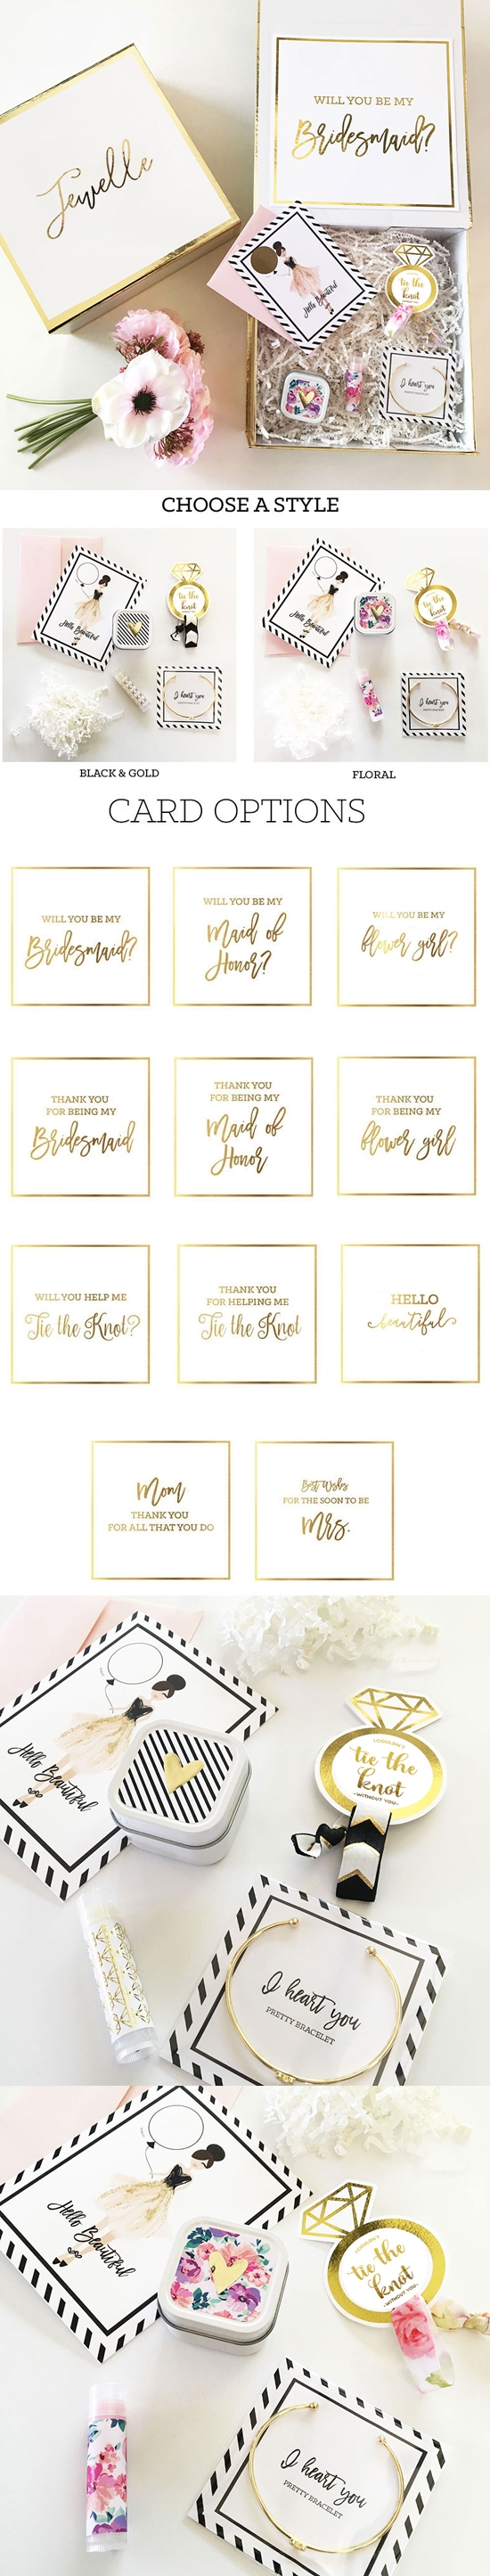 Party Proposal Best Bridal Party Proposal Or Thank You Gift Set In Personalized Giftbox .